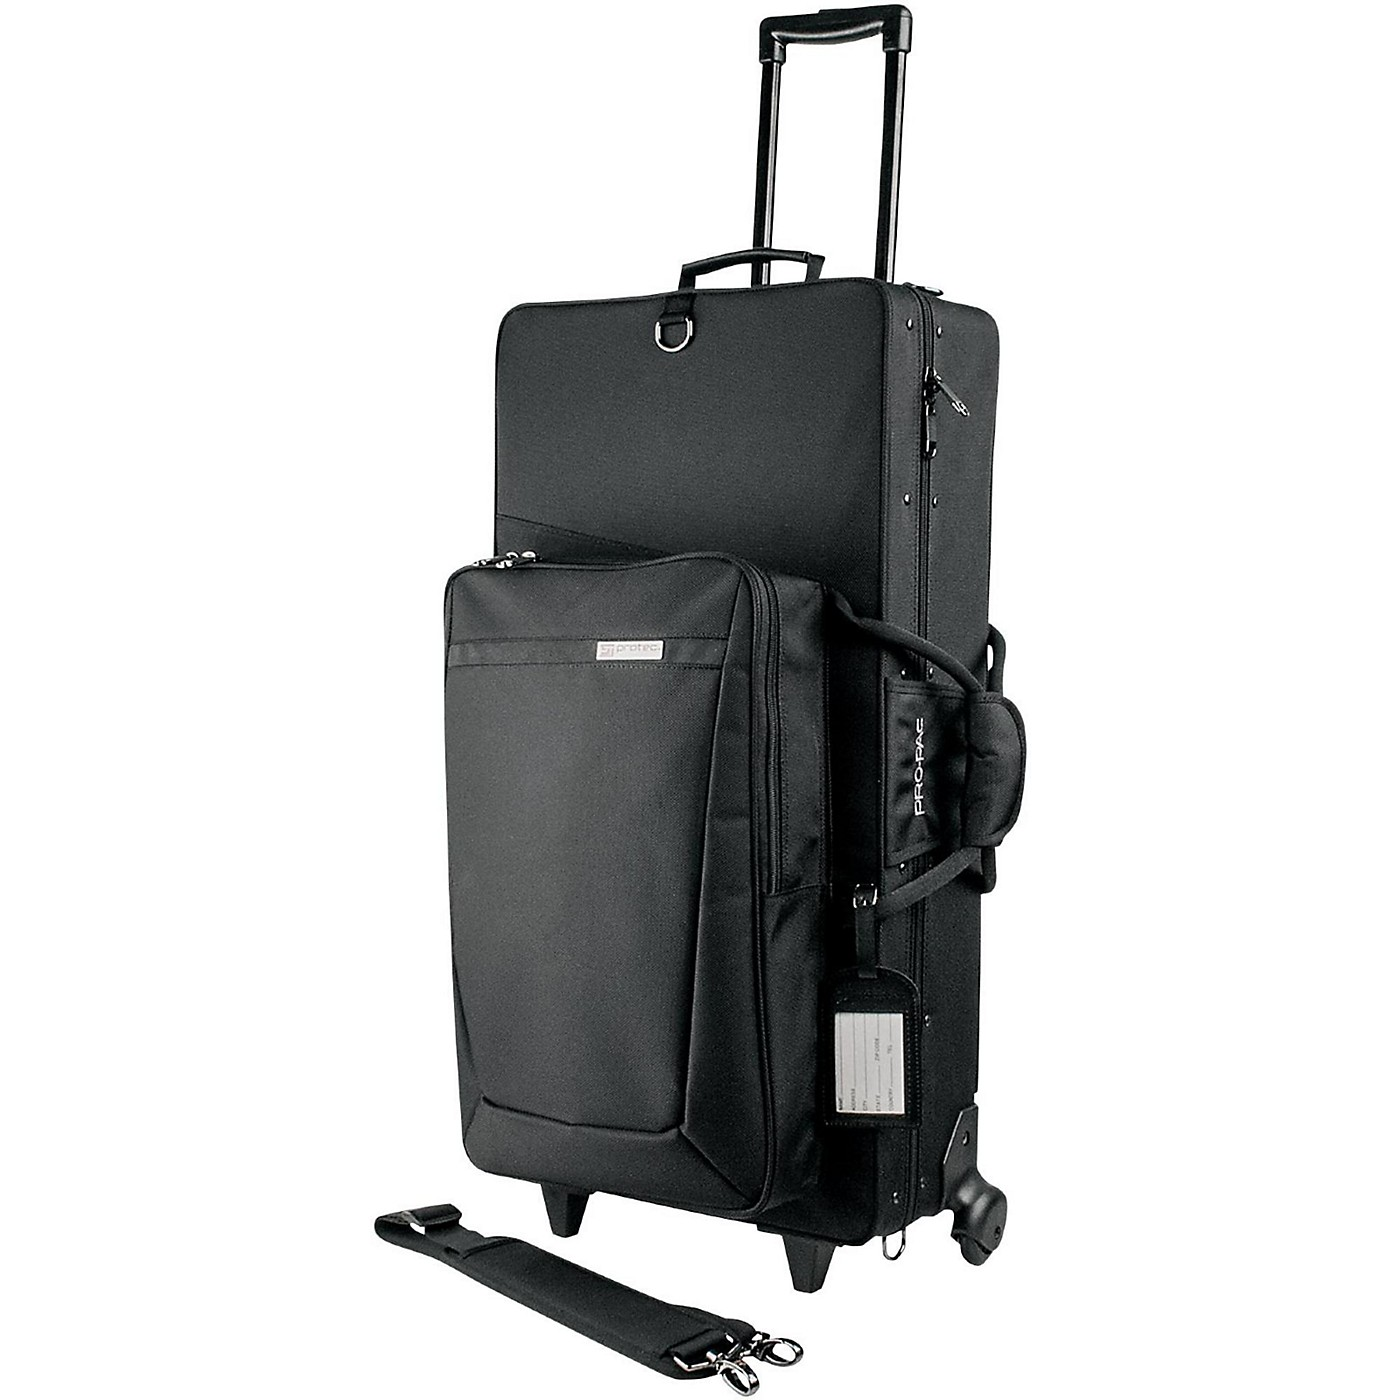 Protec PRO PAC Alto and Straight Soprano Saxophone Case with Wheels thumbnail